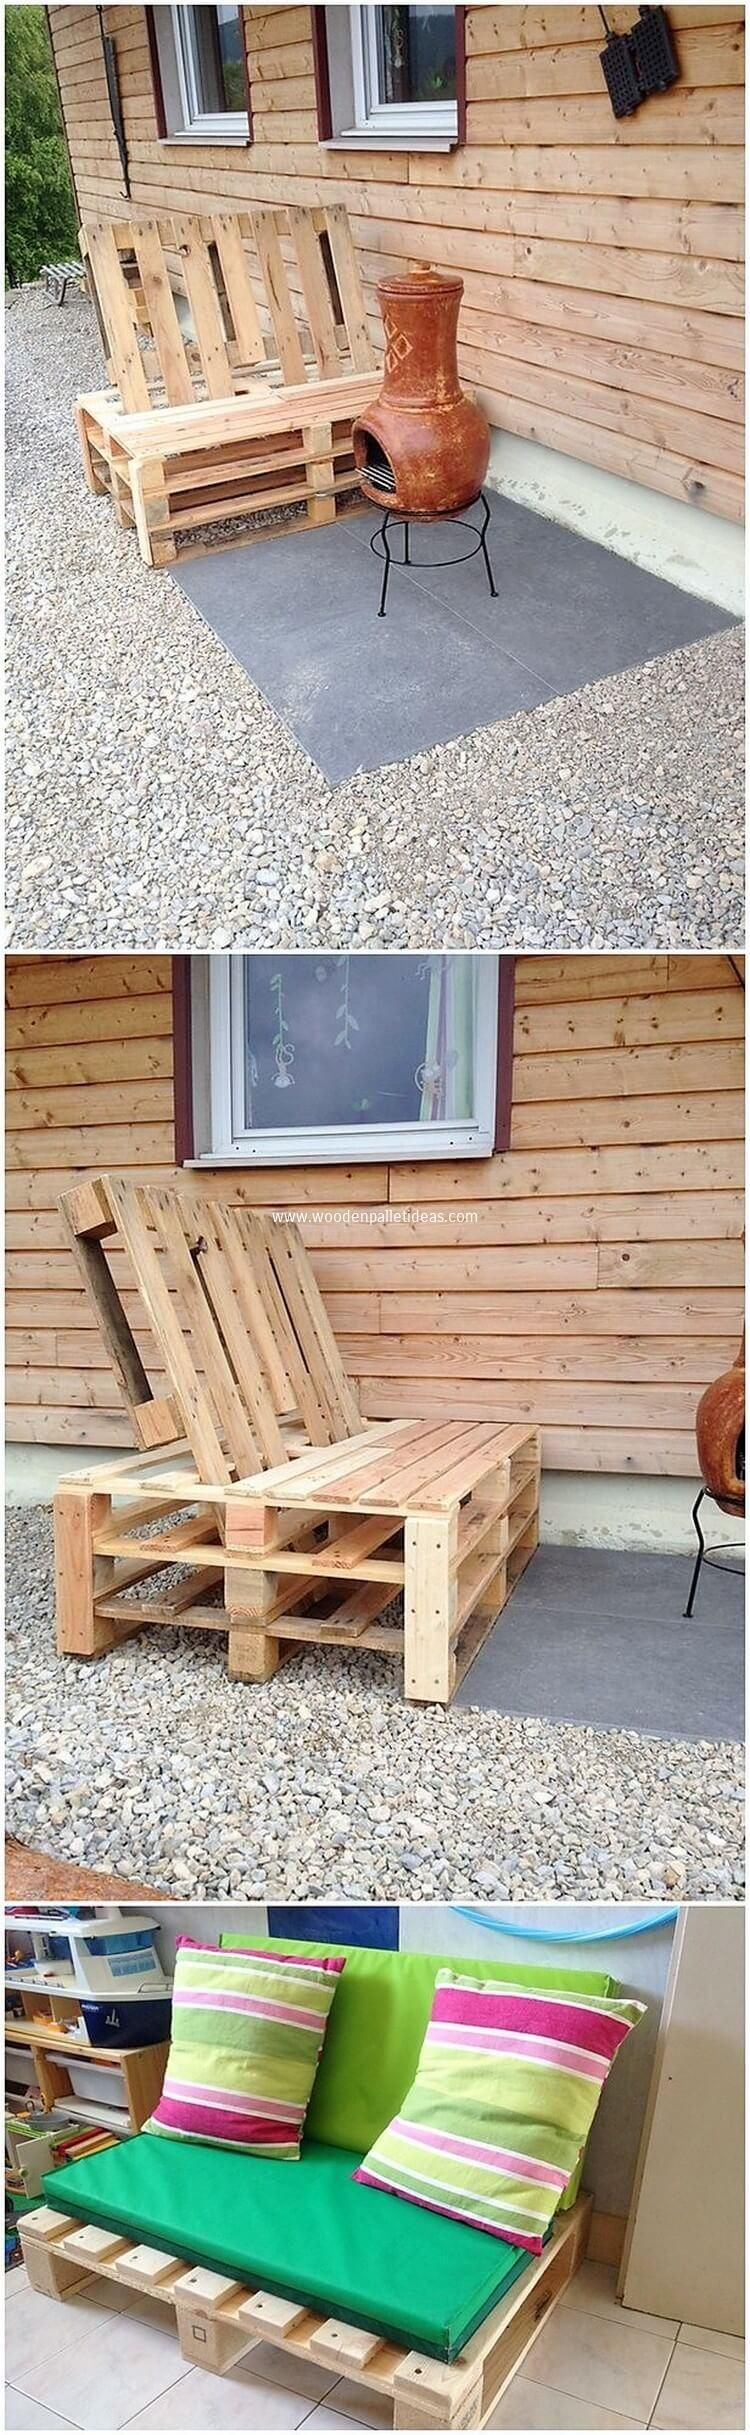 Awesome Wood Pallet DIY Projects You Can Try Today #oldpalletsforcrafting